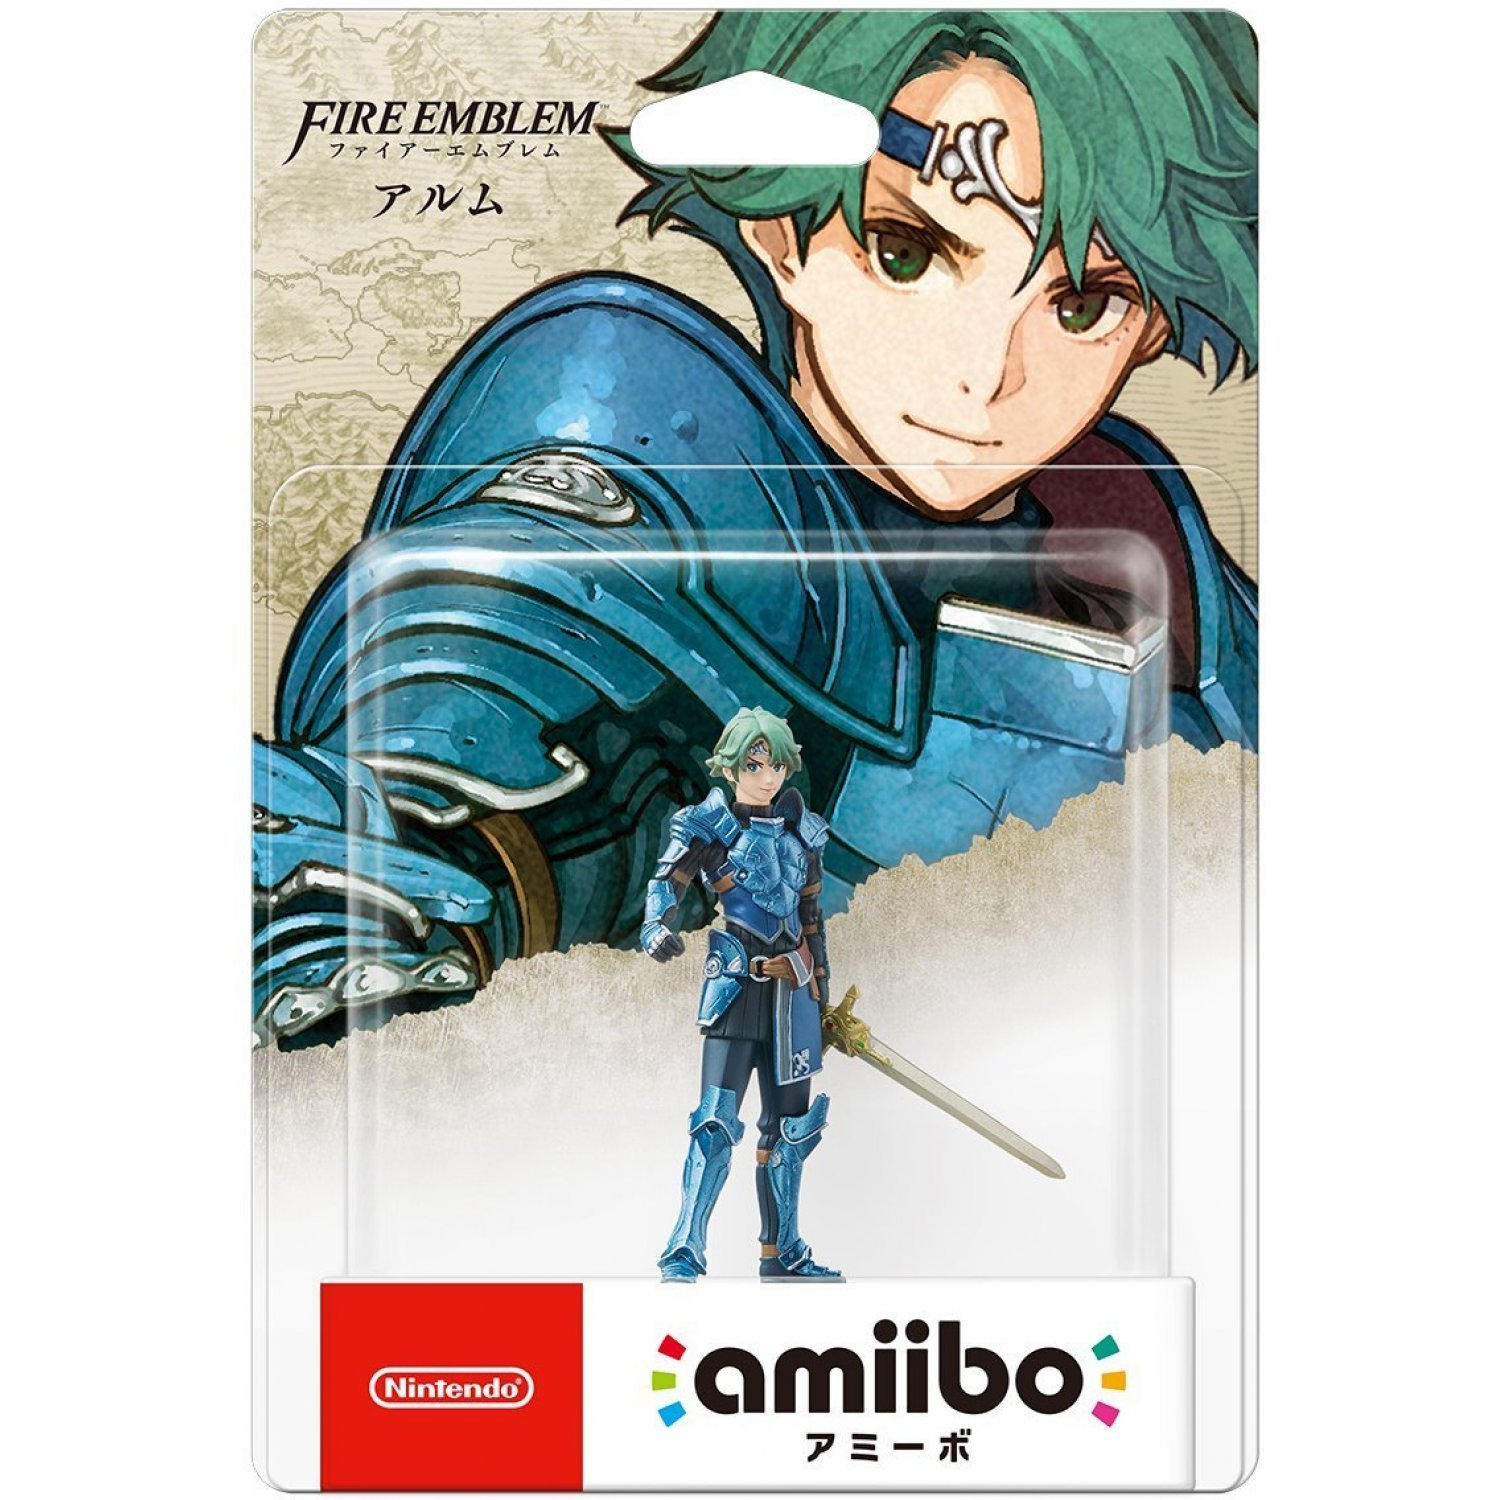 Dlc Infomation Released For Fire Emblem Echoes Shadows Of Valentia 3dsfire Shadow